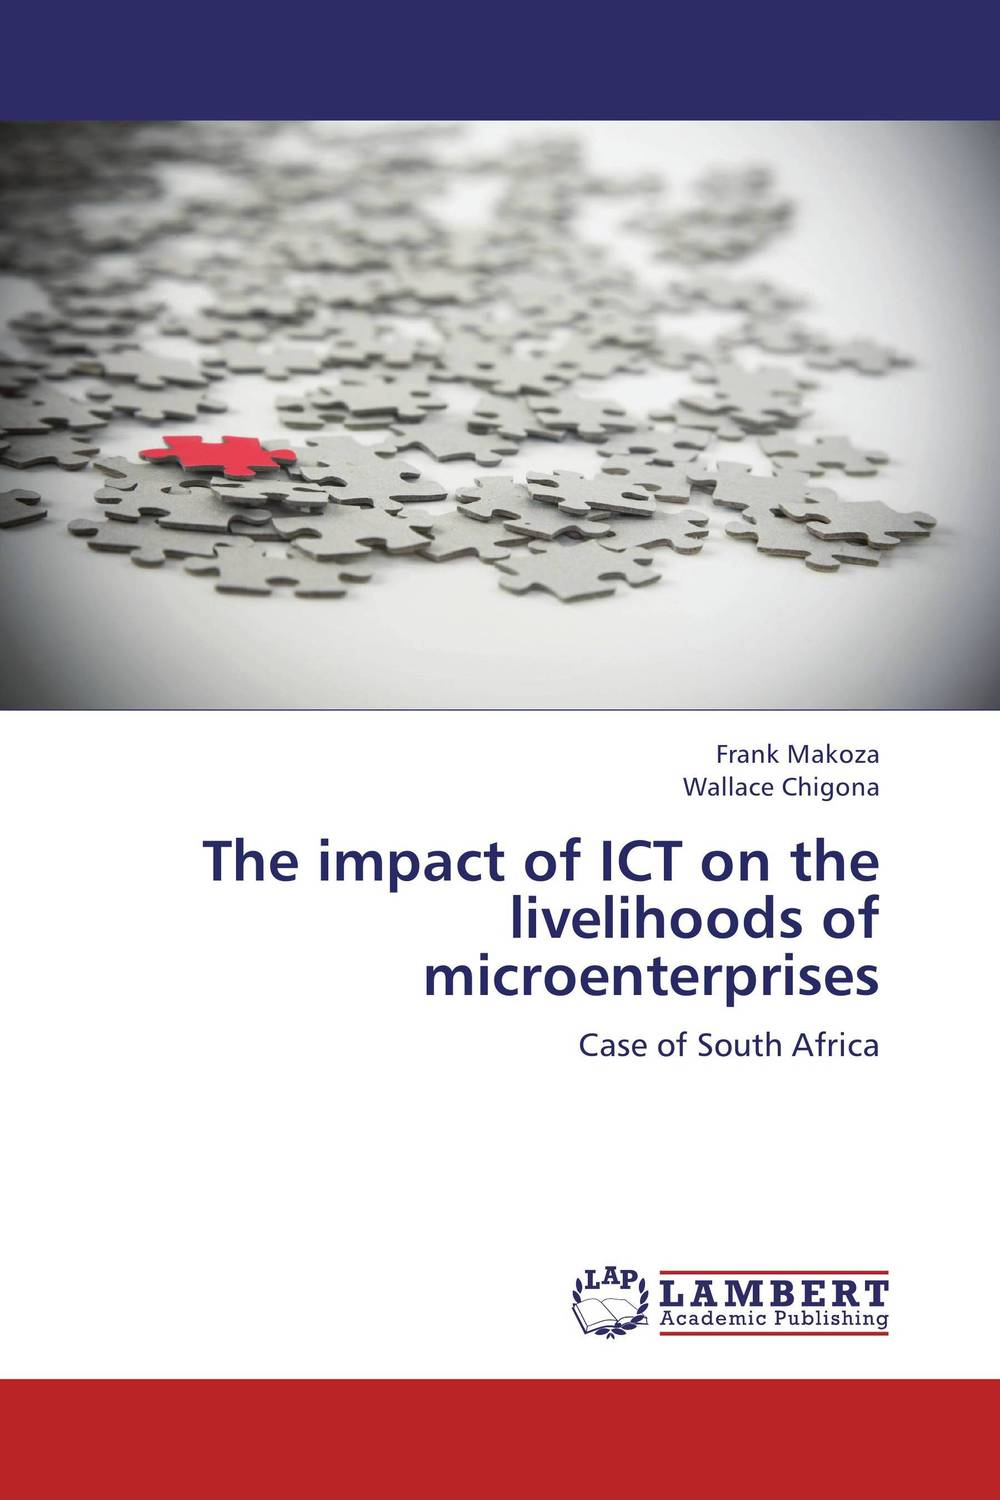 The impact of ICT on the livelihoods of microenterprises галогенная лампа donar dn 38741 30 3v 200w ezl 02